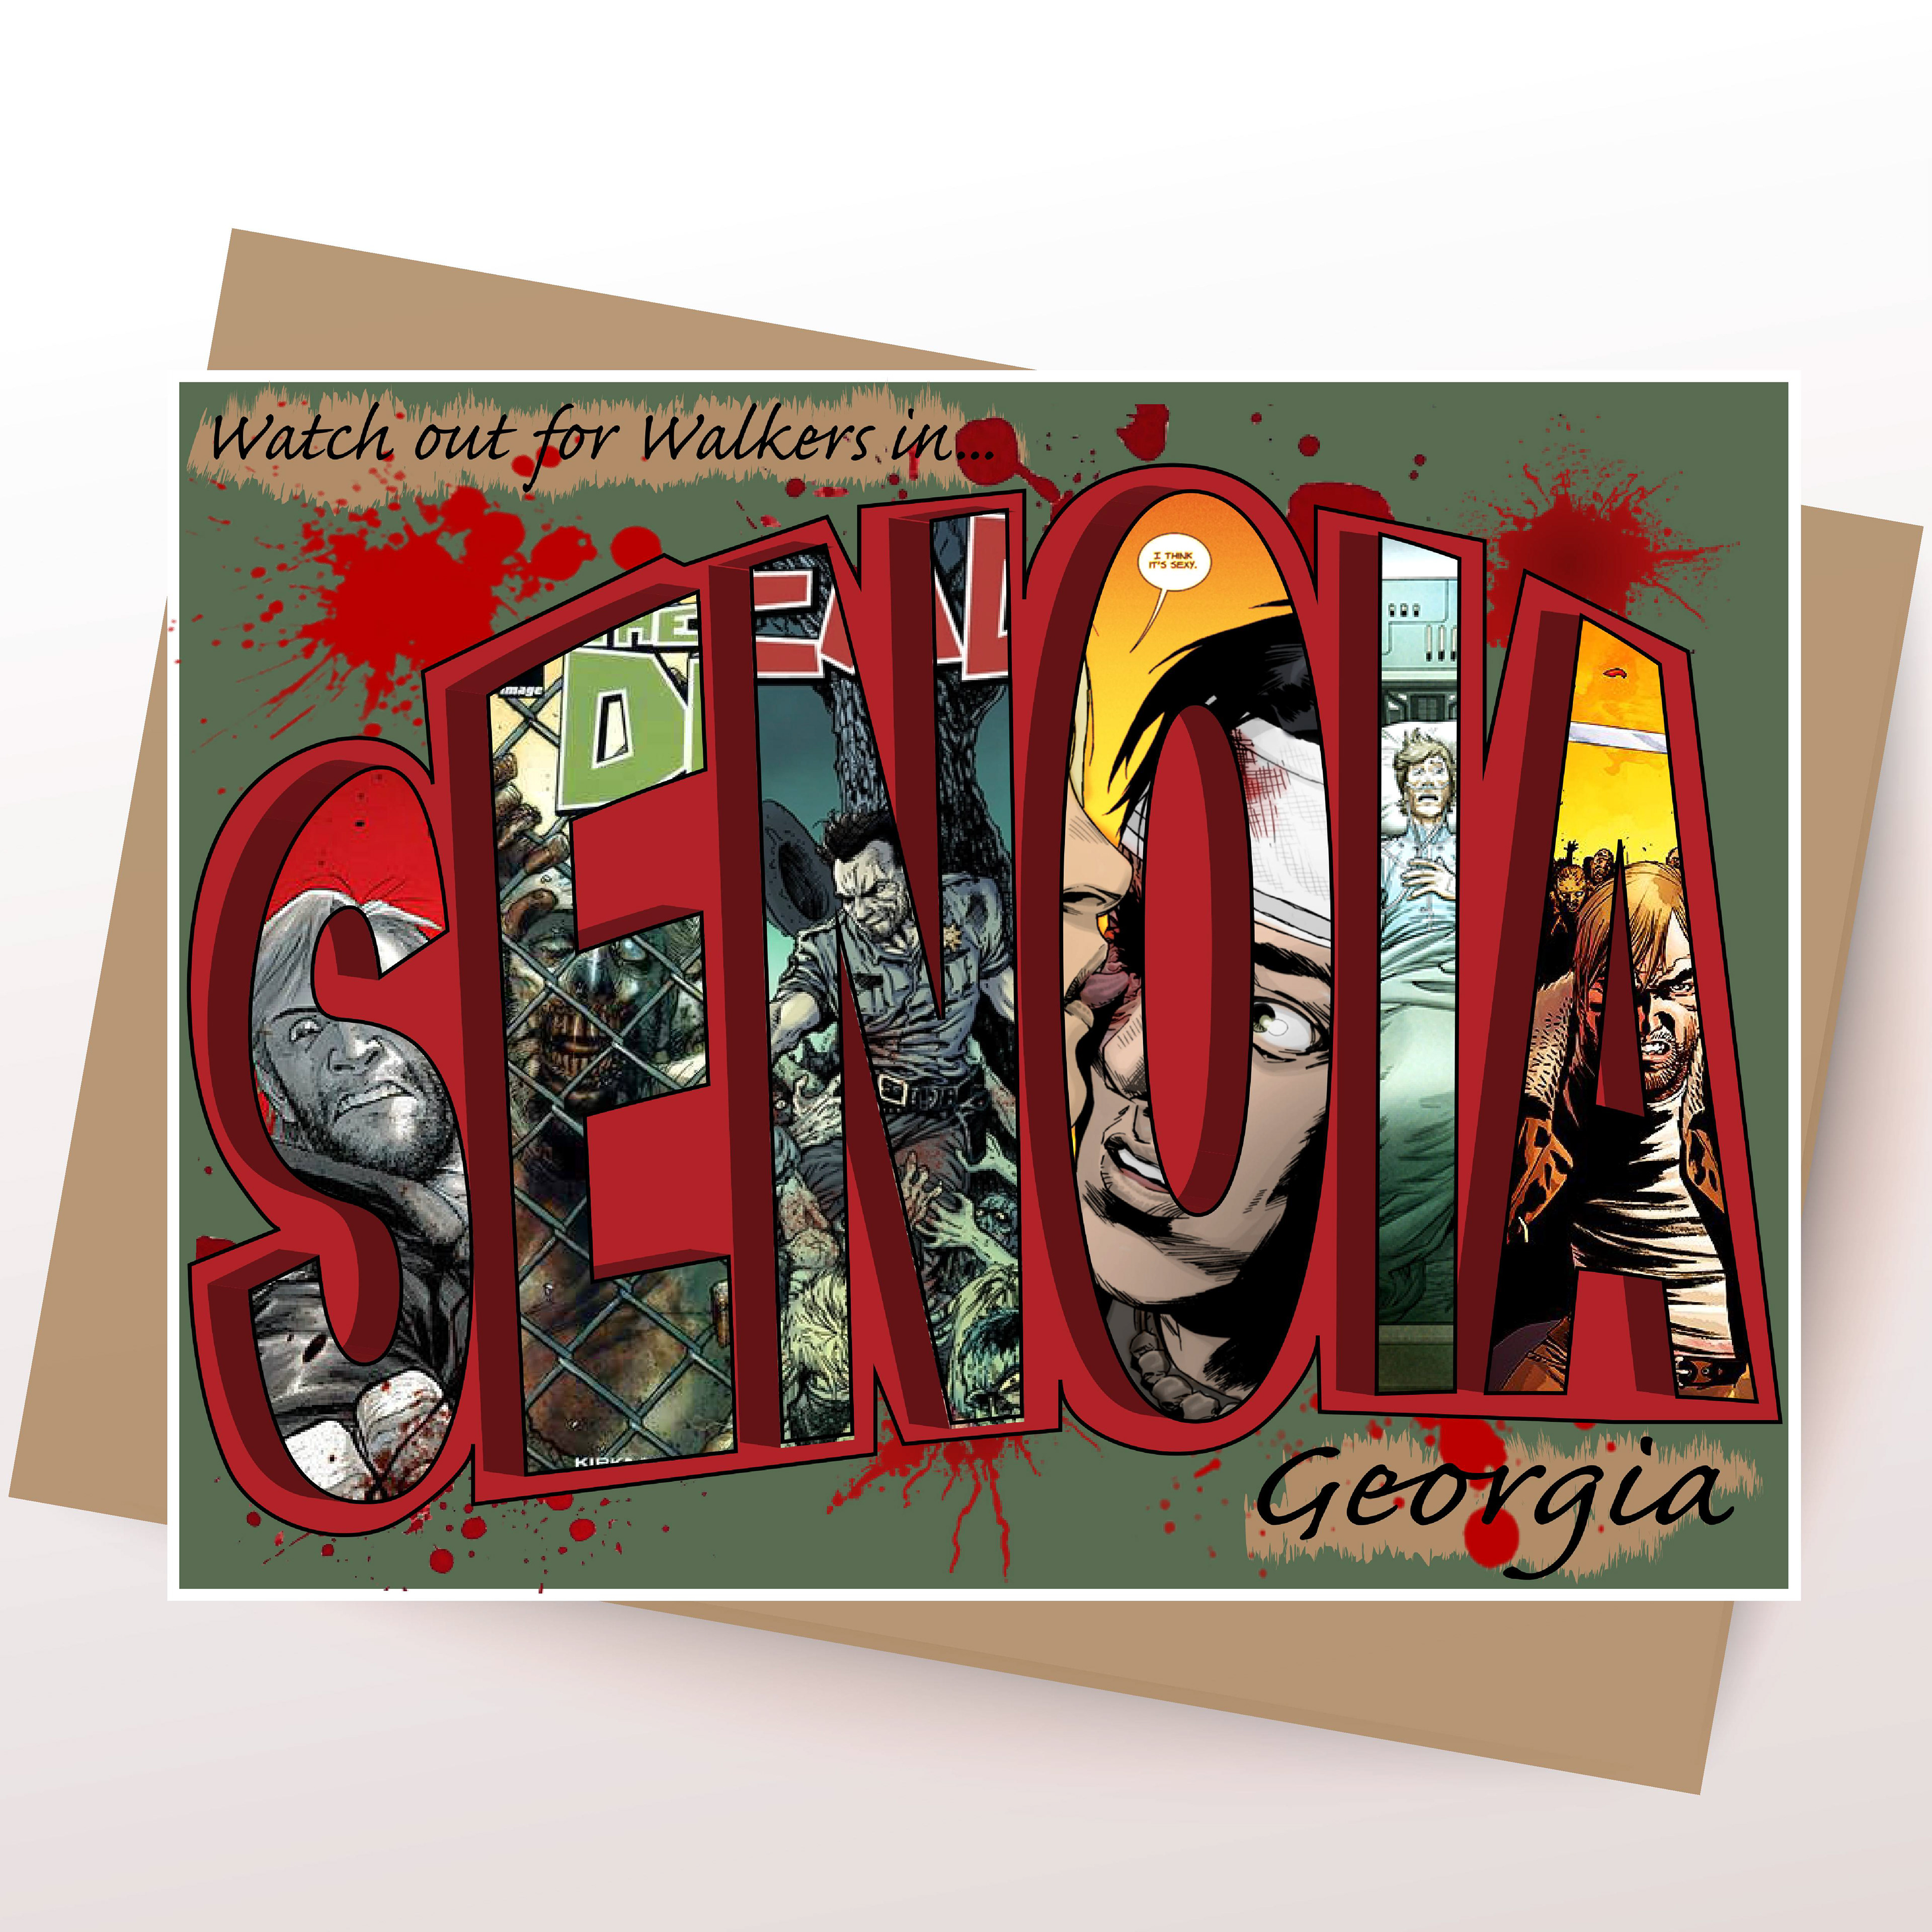 Kayla meadows big letter greeting card since the town of senoia is where filming of the tv show the walking dead takes place i chose to make the greeting card the theme of the show m4hsunfo